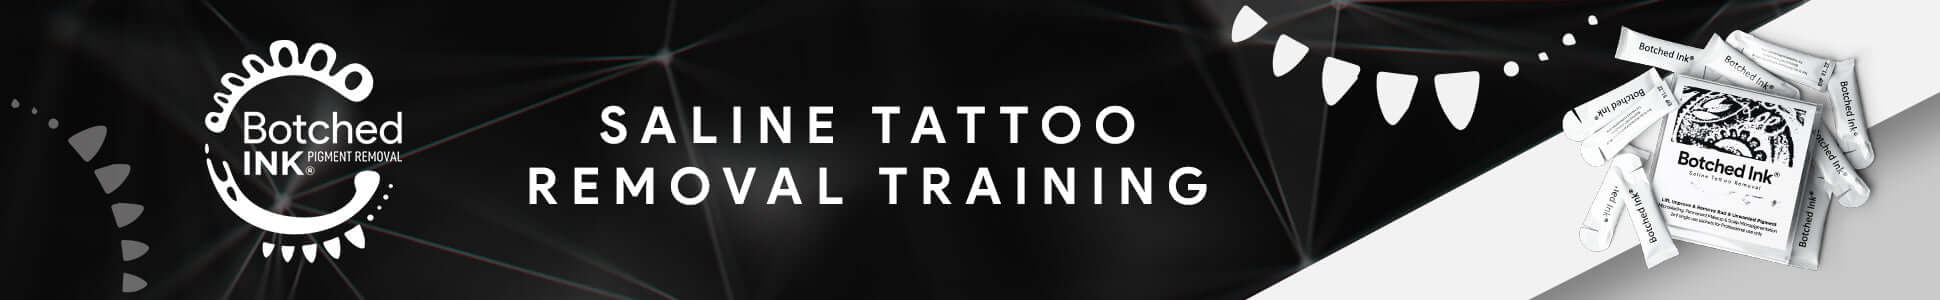 Botched Ink saline tattoo removal training microblading permanent makeup